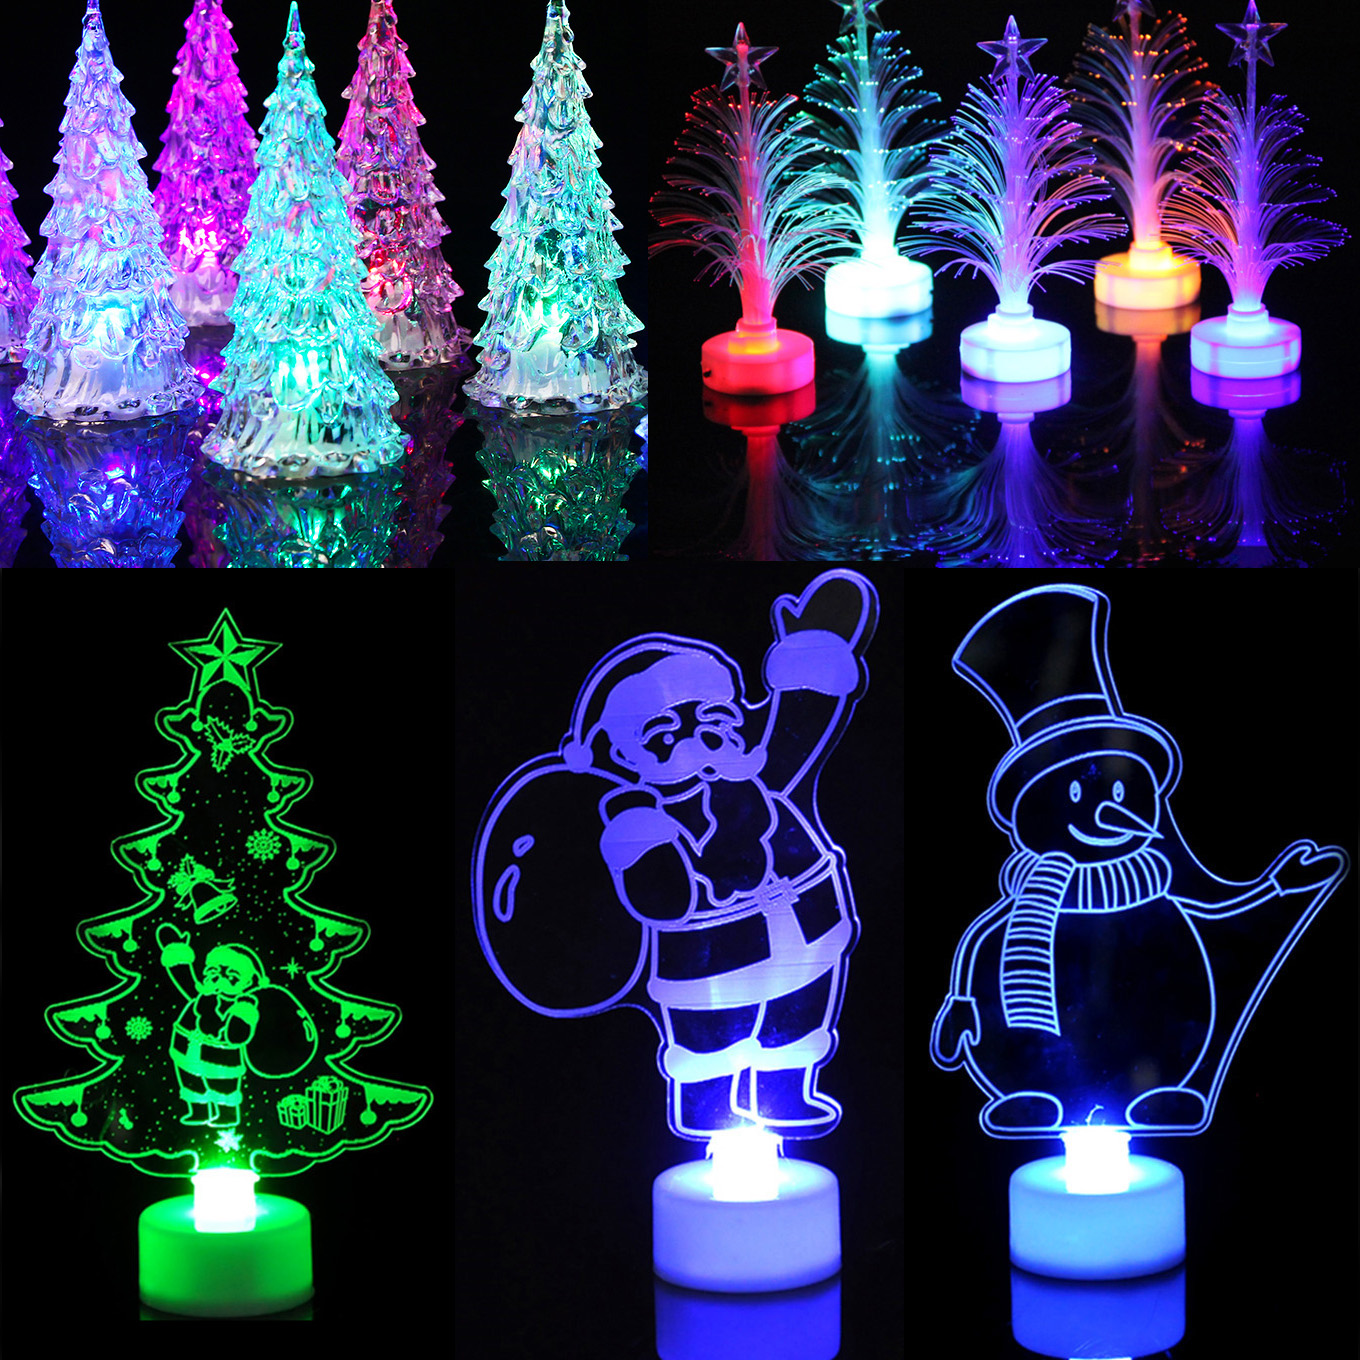 Colorful Mini Luces Led Christmas Tree Night <font><b>Light</b></font> Snowman Children Gift Xmas <font><b>Lights</b></font> Lamps Party <font><b>Home</b></font> <font><b>Decor</b></font> 1PC 5PCS 10PCS 20PCS image